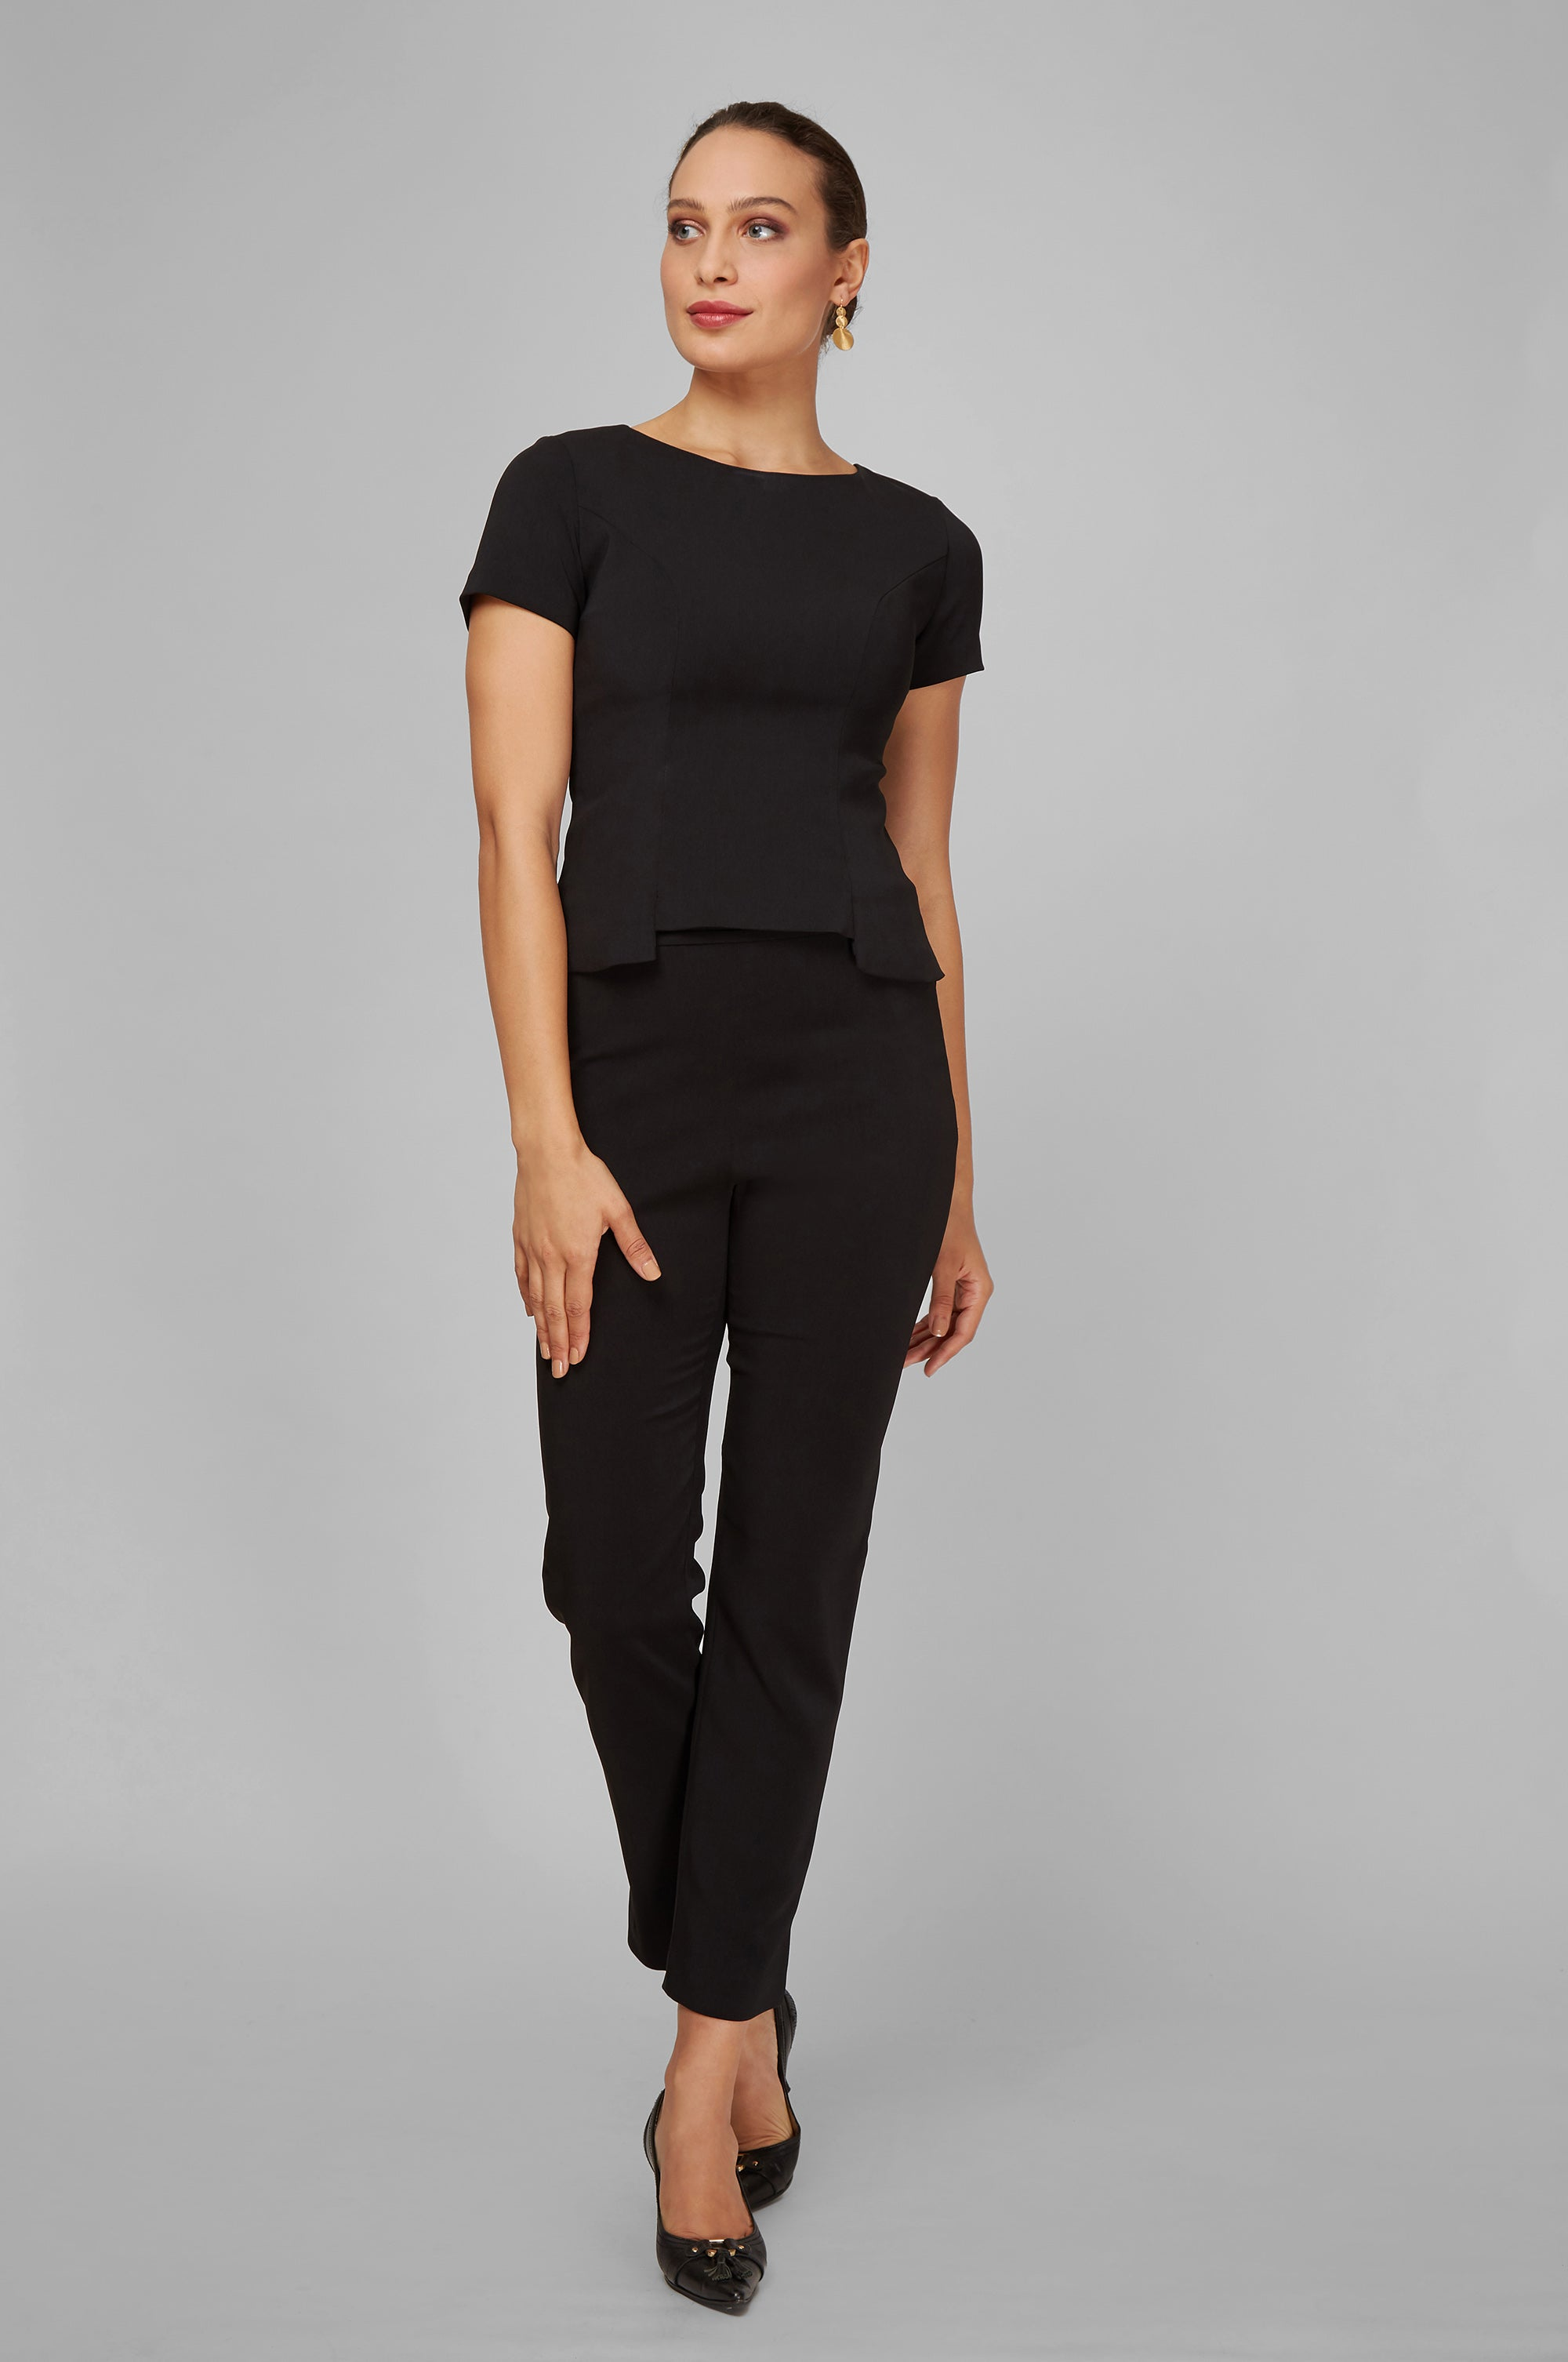 Women's Audrey Work Pant in Black | Nora Gardner - Front